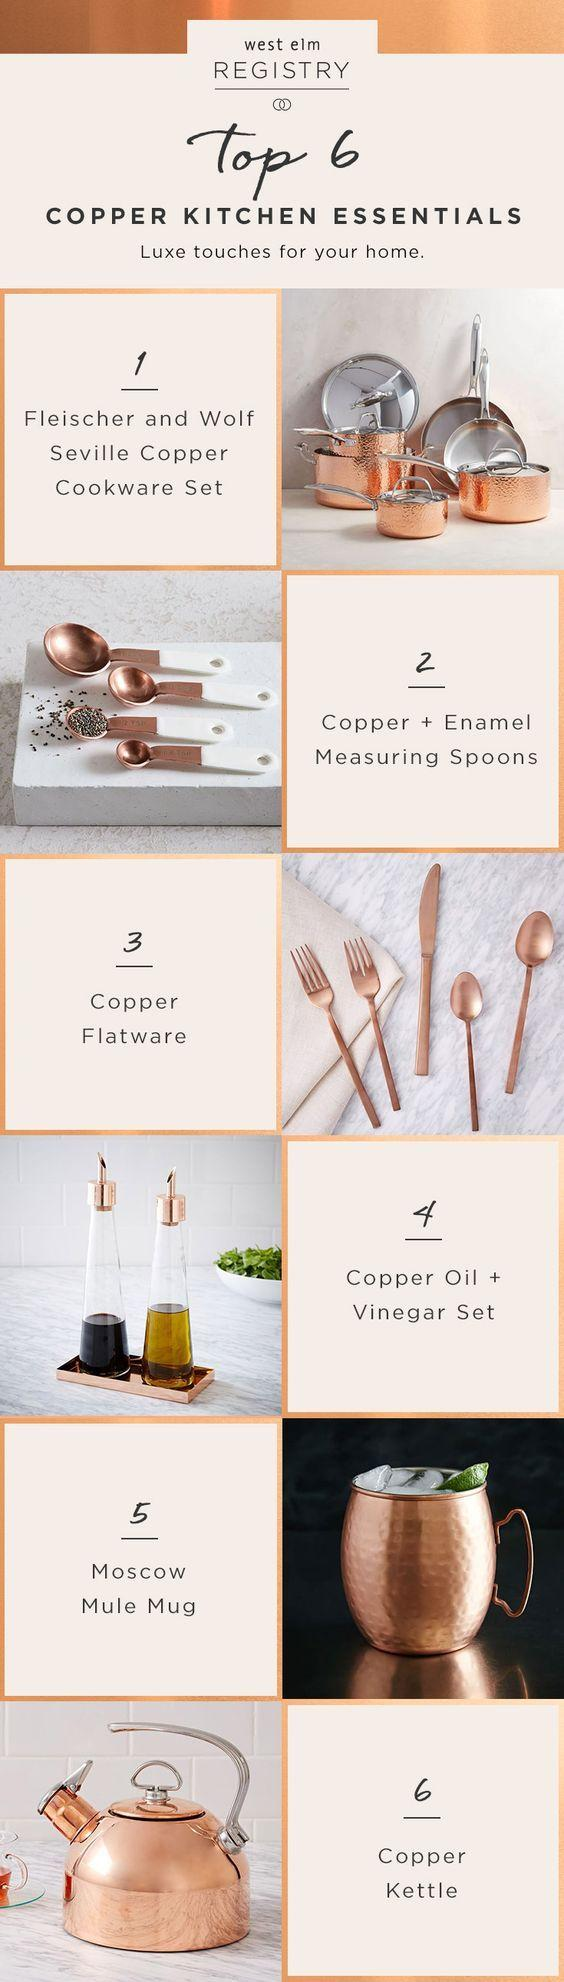 Hochzeit - Tying The Knot? These Copper Kitchen Essentials Are Wedding Registry Must-haves! Head Over To Westelm.com To Get Your Registry Started.